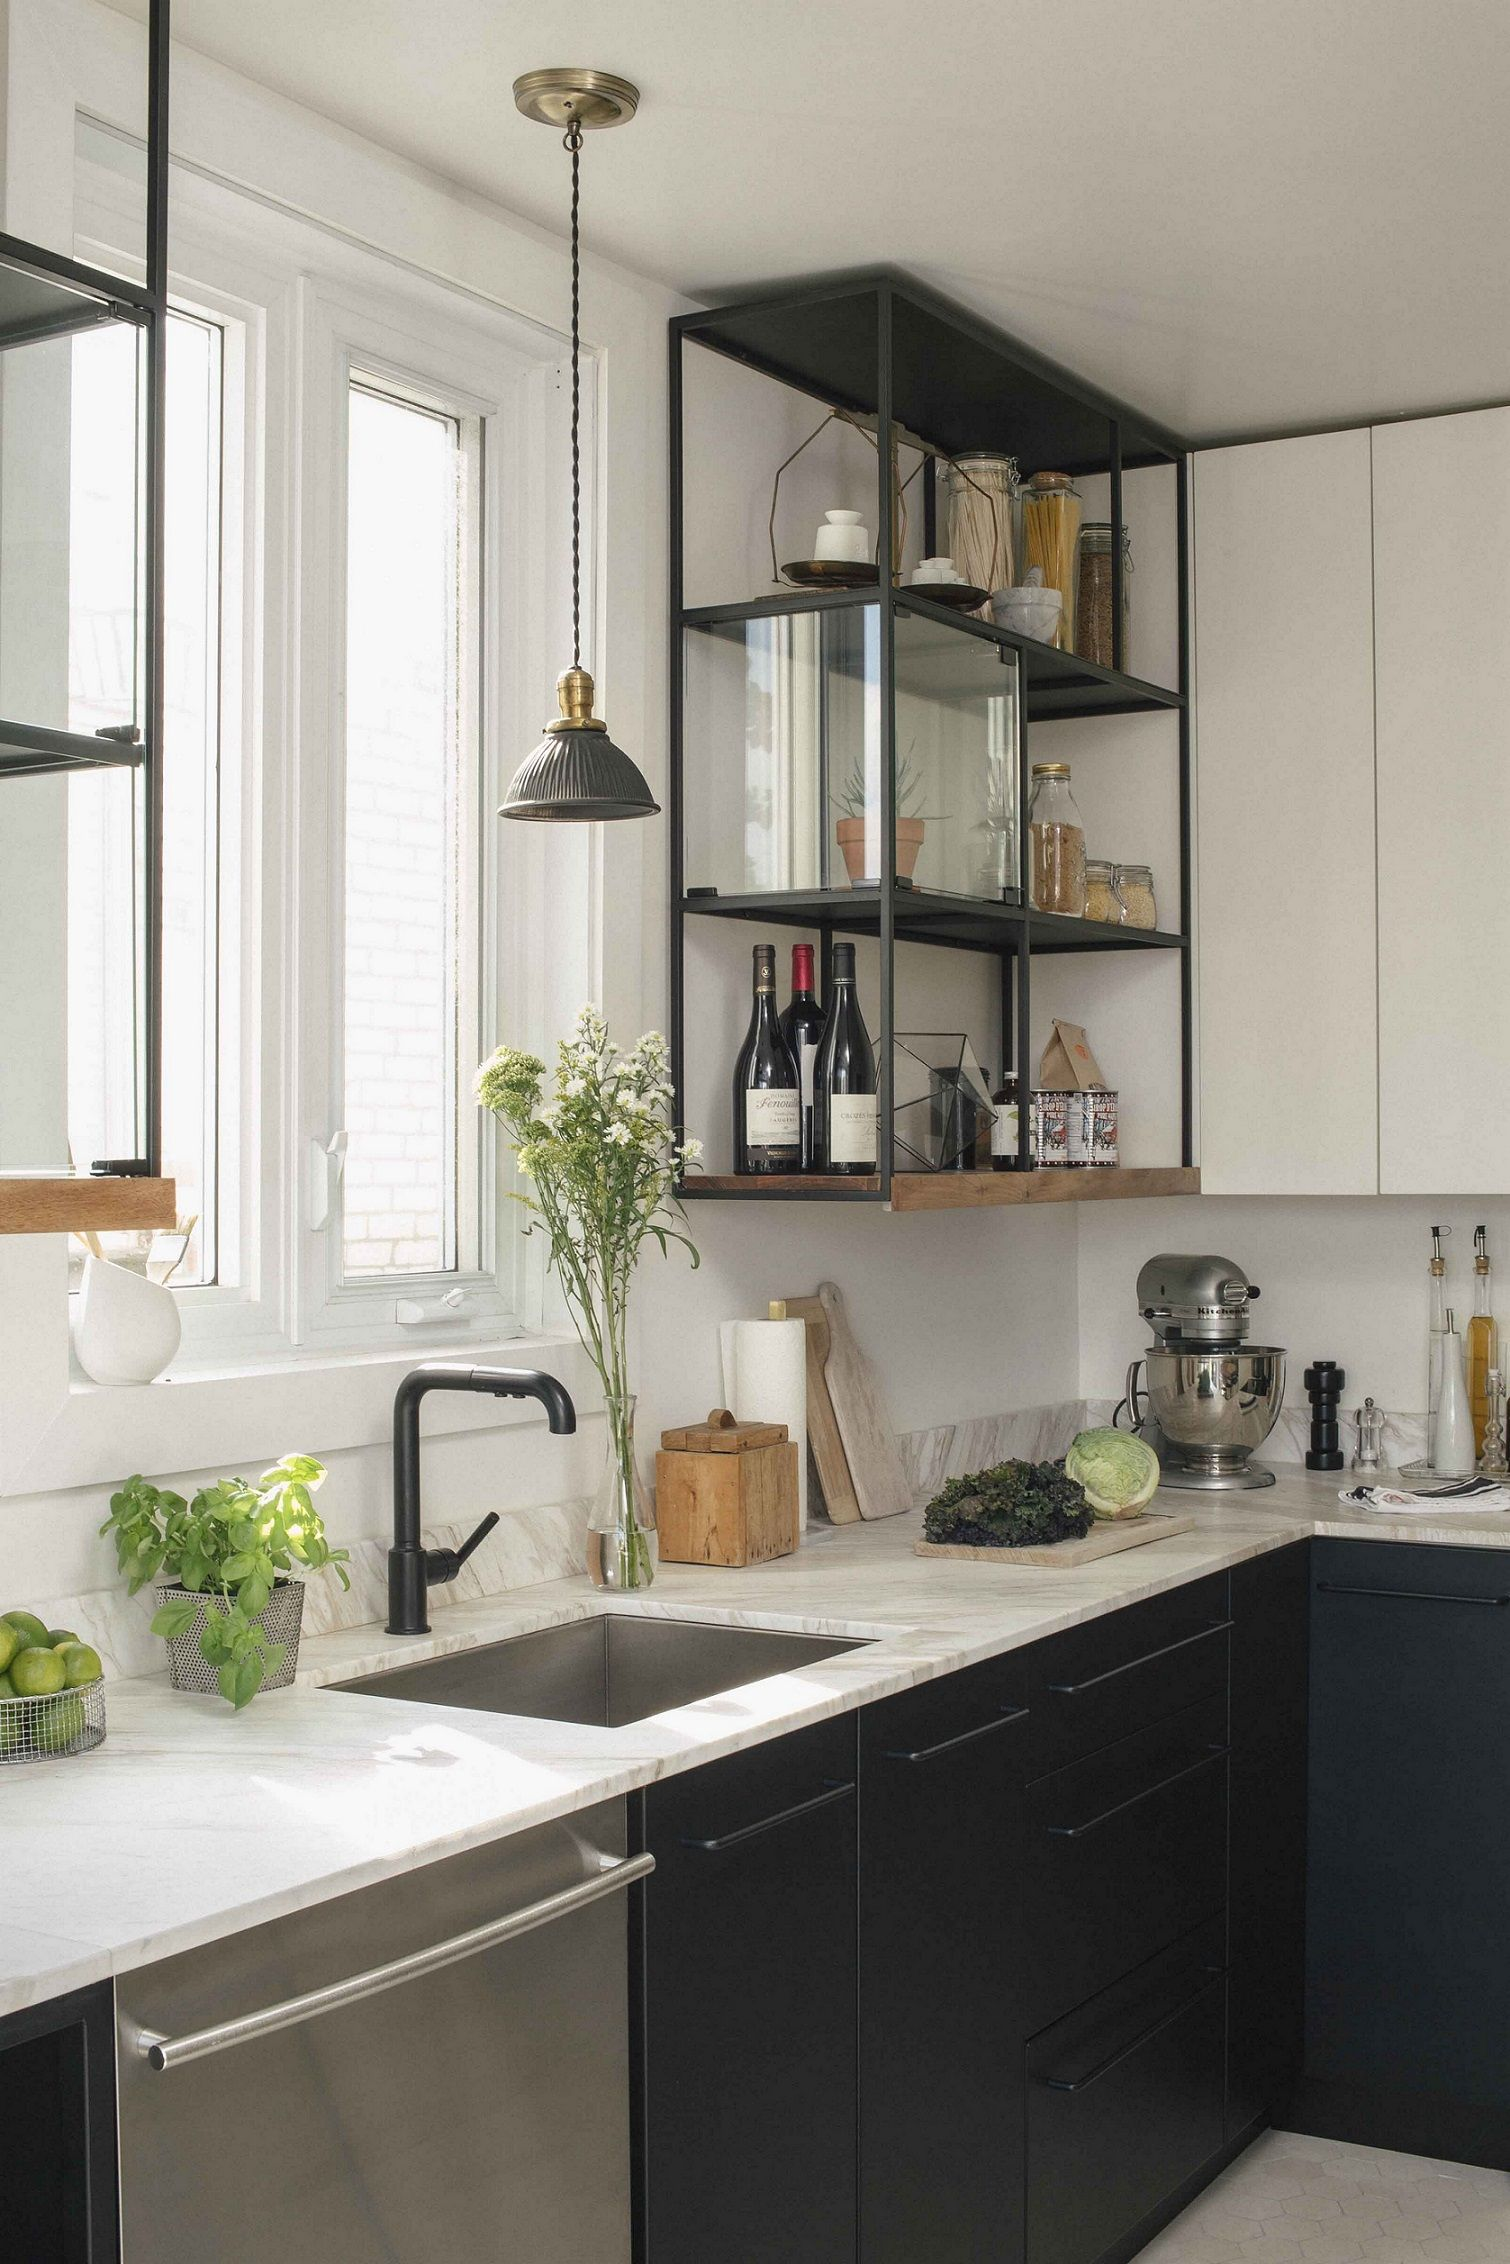 make vanity that attaches wall like shelf simple and floating kitchen shelves ikea stylish diy for your home large storage blue metal antique fireplace mantels pottery barn white